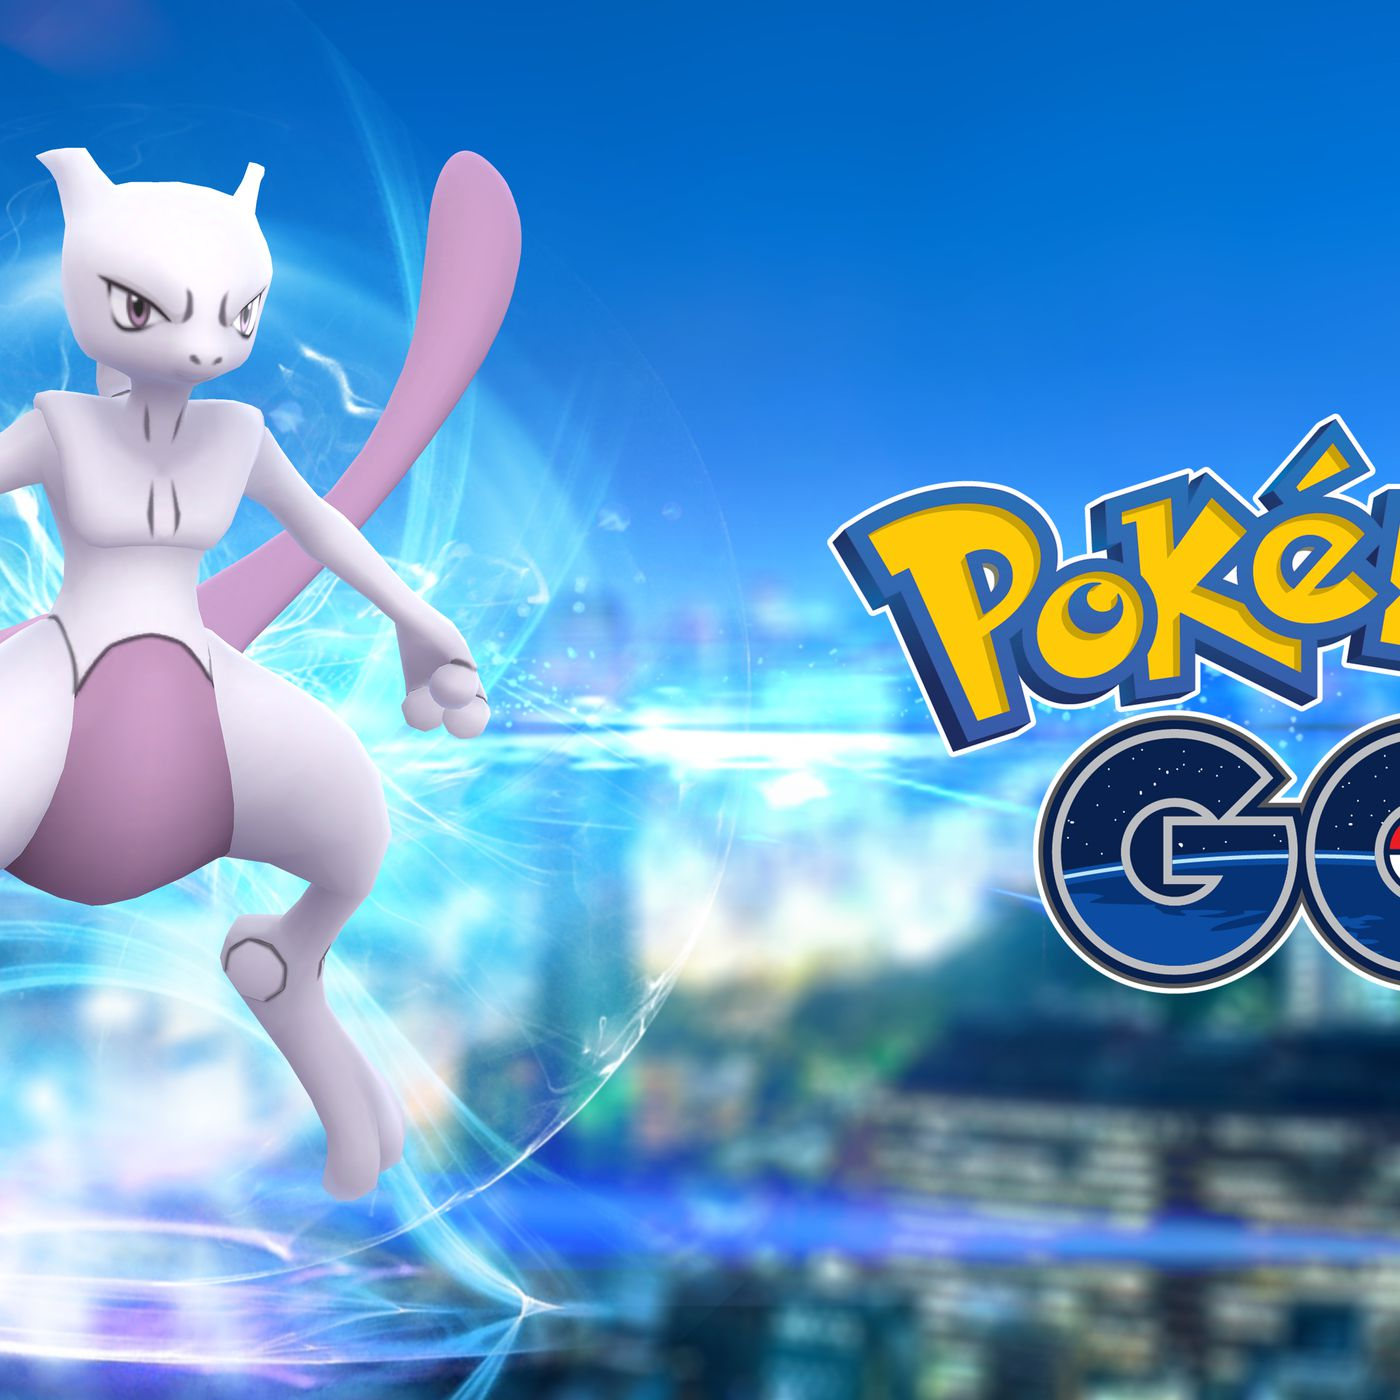 Mewtwo is coming to Pokémon Go soon in new invite-only raids - The Verge